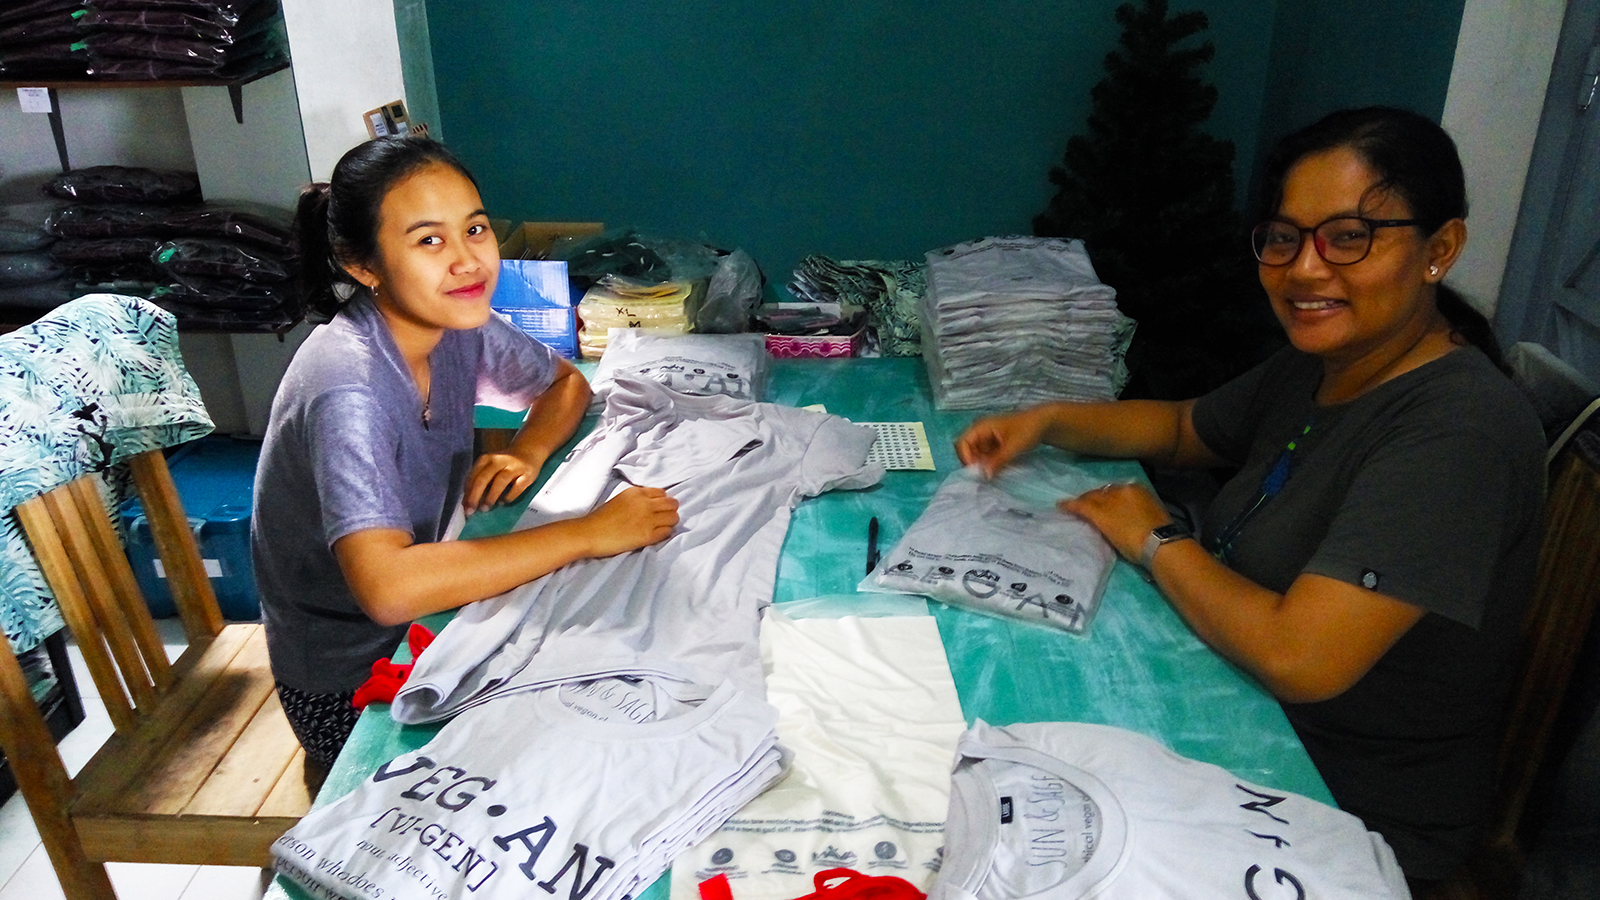 Ethical Clothing Production by Baki Clothing Company